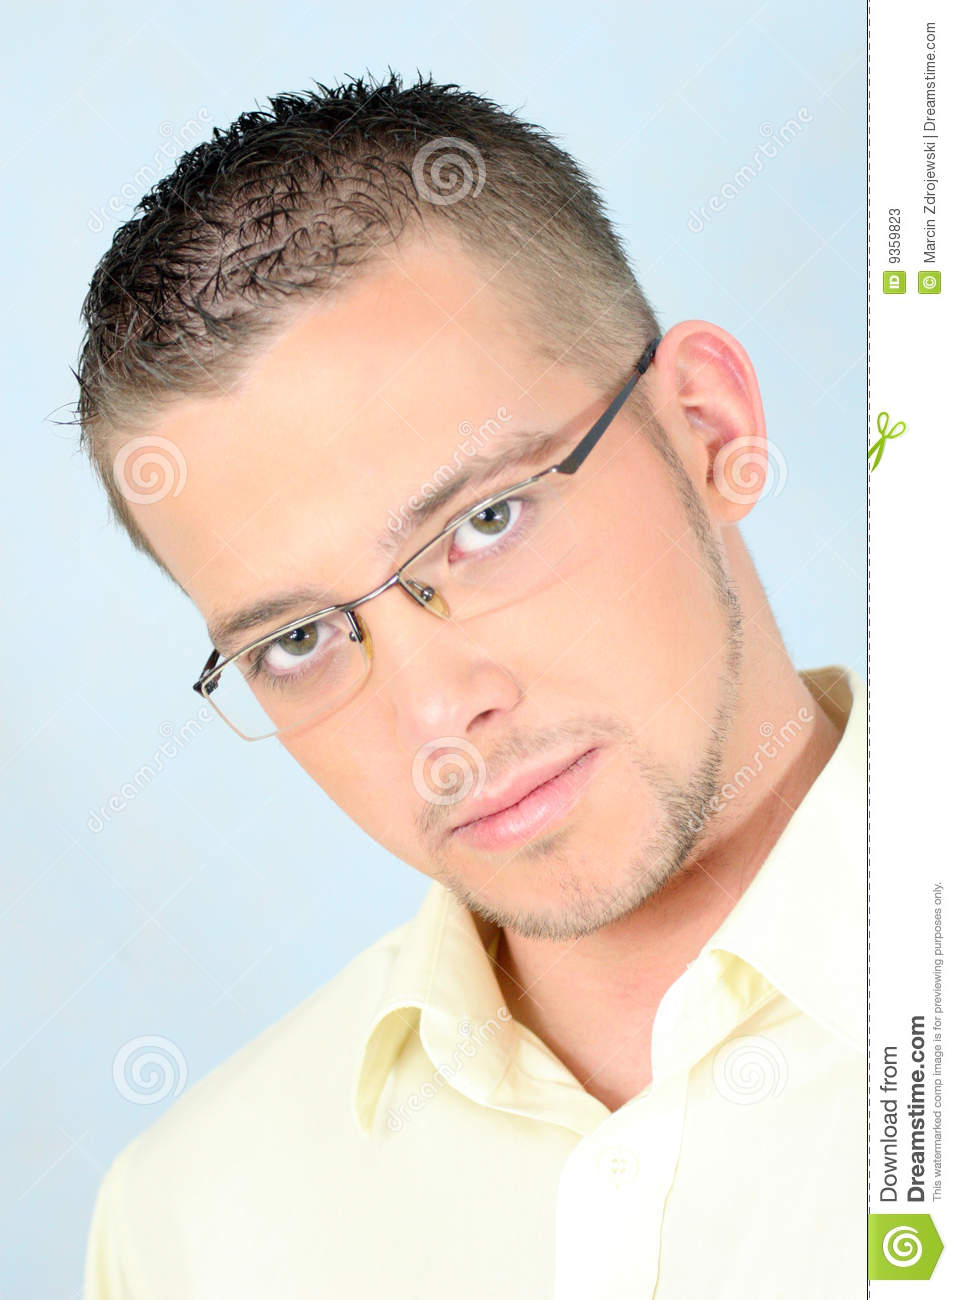 Glasses man young